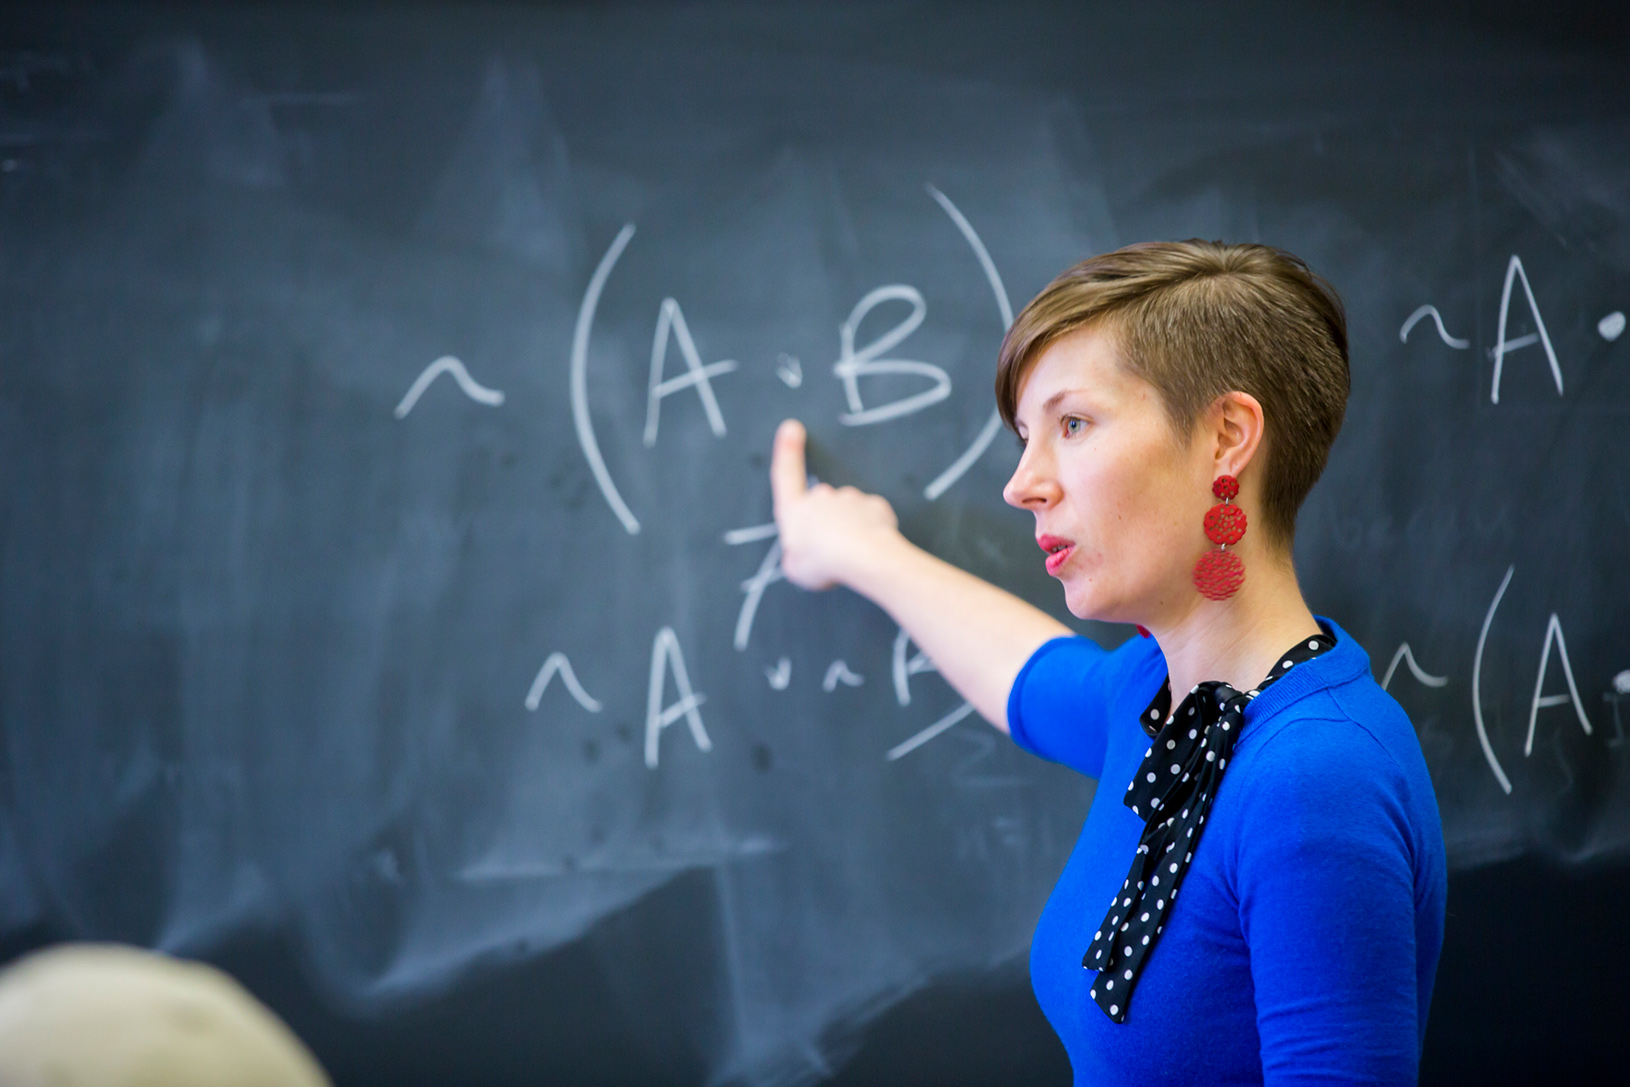 Oxford female professor in bright blue dress pointing to blackboard